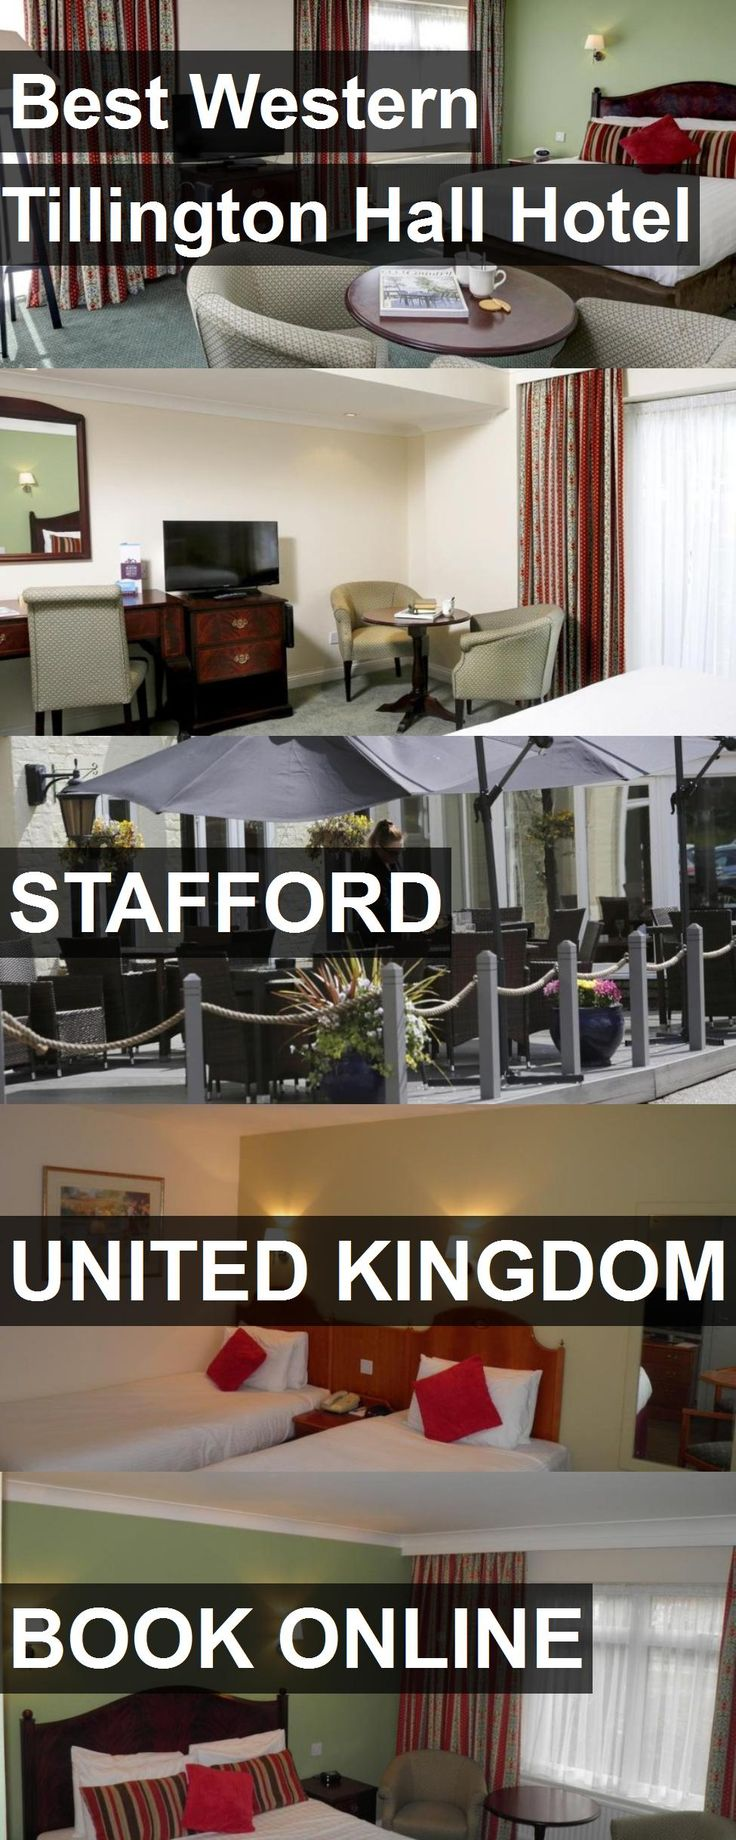 Best Western Tillington Hall Hotel in Stafford, United Kingdom. For more information, photos, reviews and best prices please follow the link. #UnitedKingdom #Stafford #travel #vacation #hotel